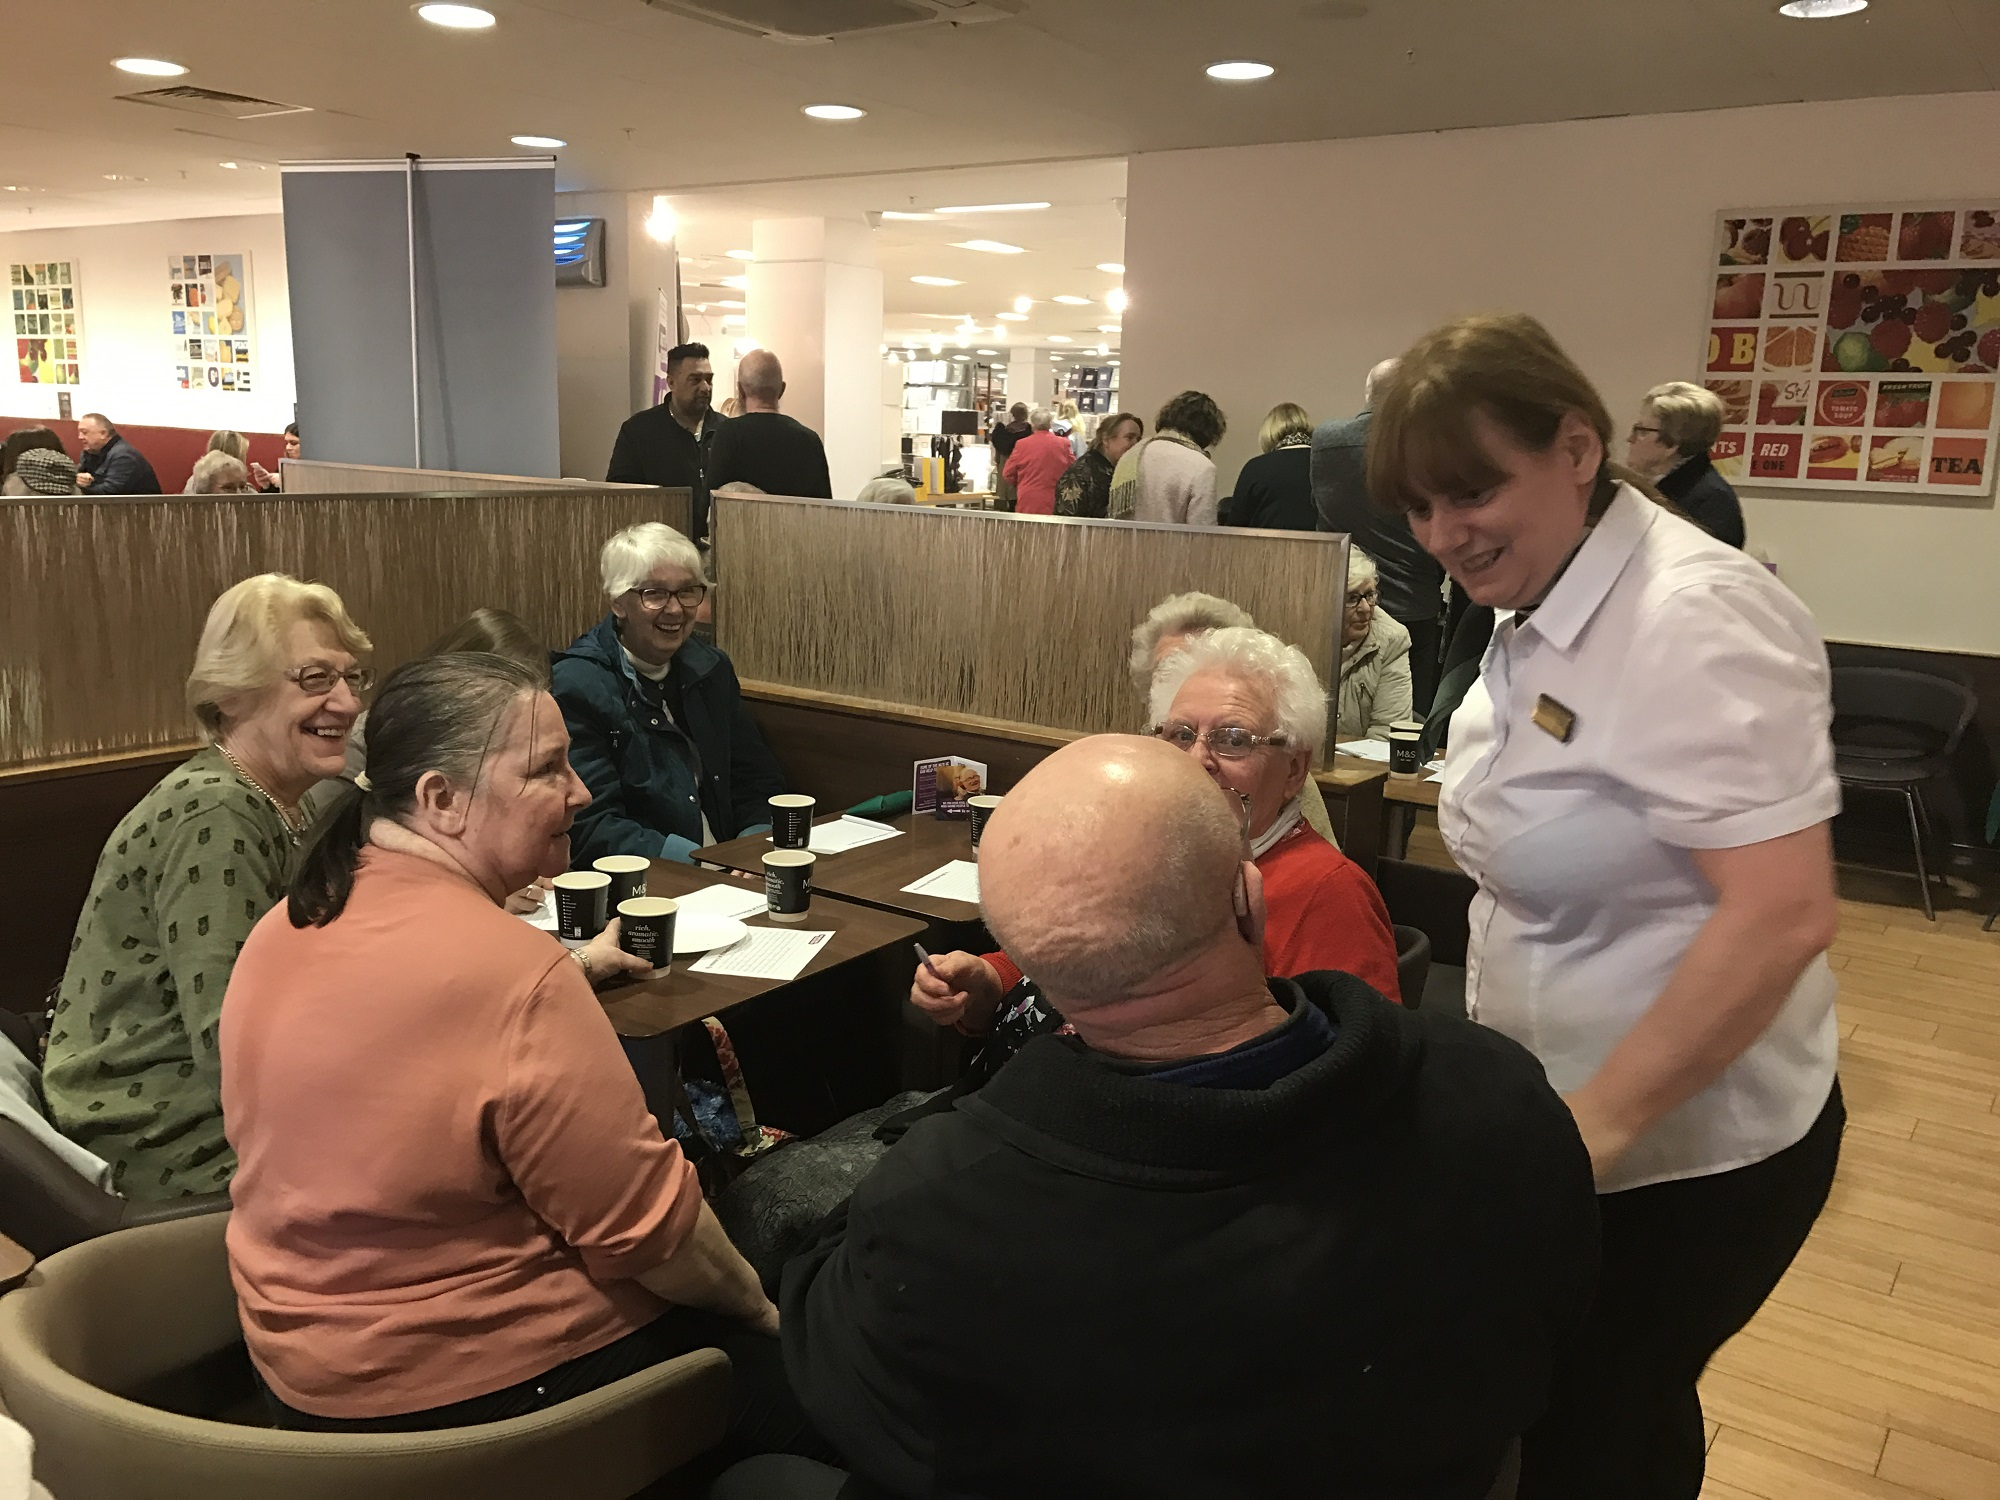 A previous Ageing Better Middlesbrough event at the town centre Marks and Spencer proved popular.